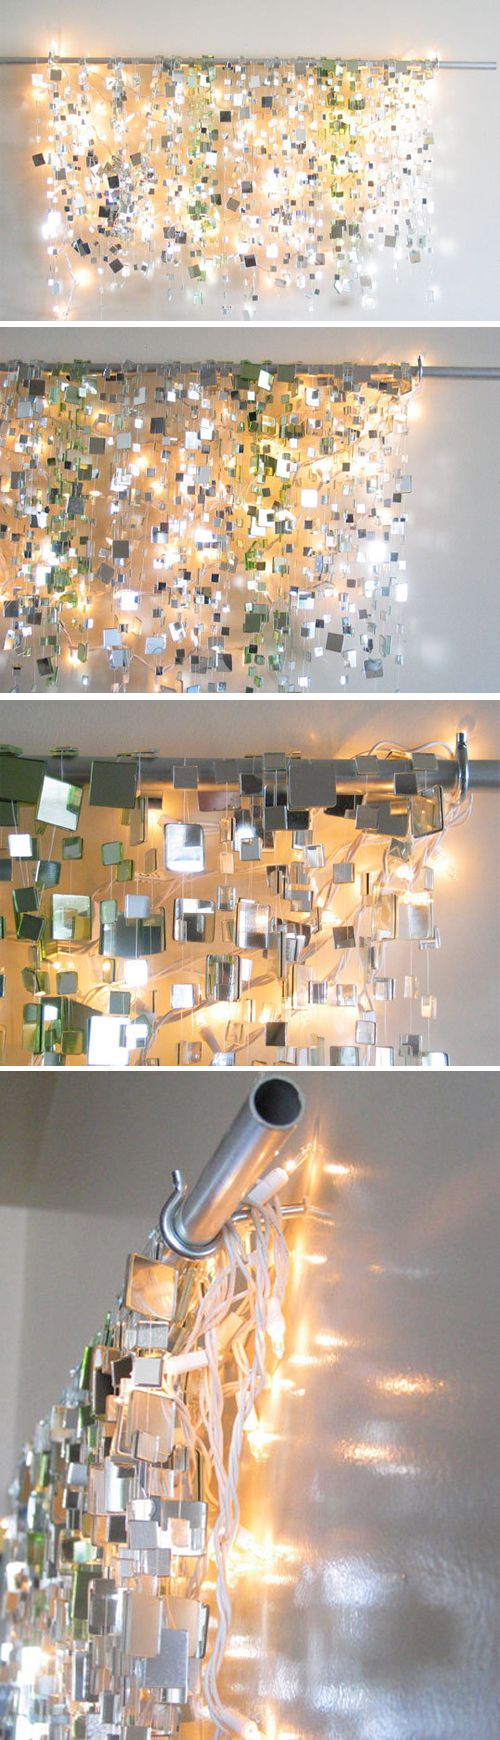 Small mirror tiles glued to fishing line with lights behind it. Clever!